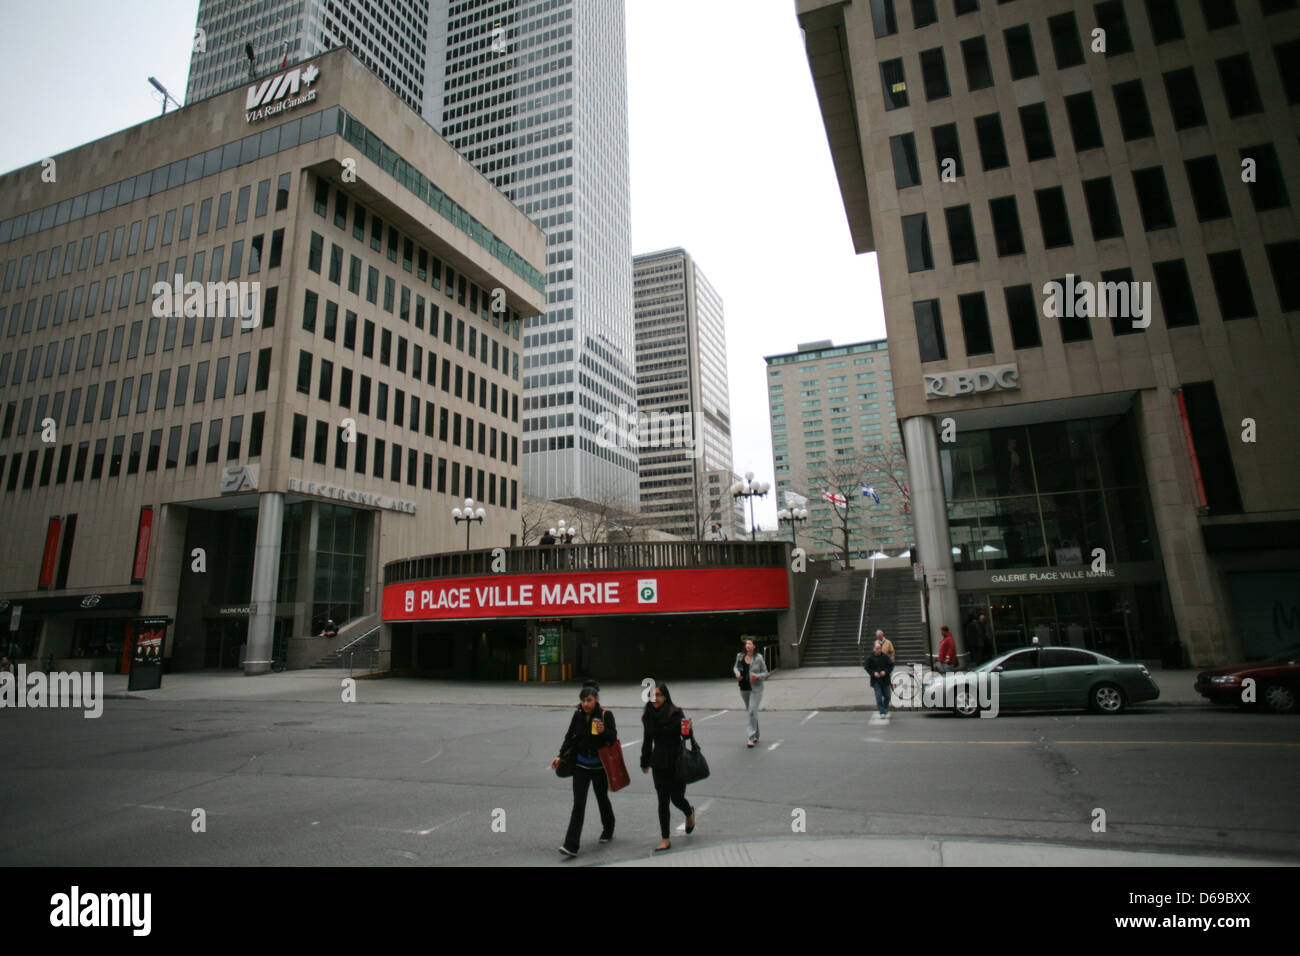 Place Ville Marie in downtown Montreal, Quebec. Stock Photo